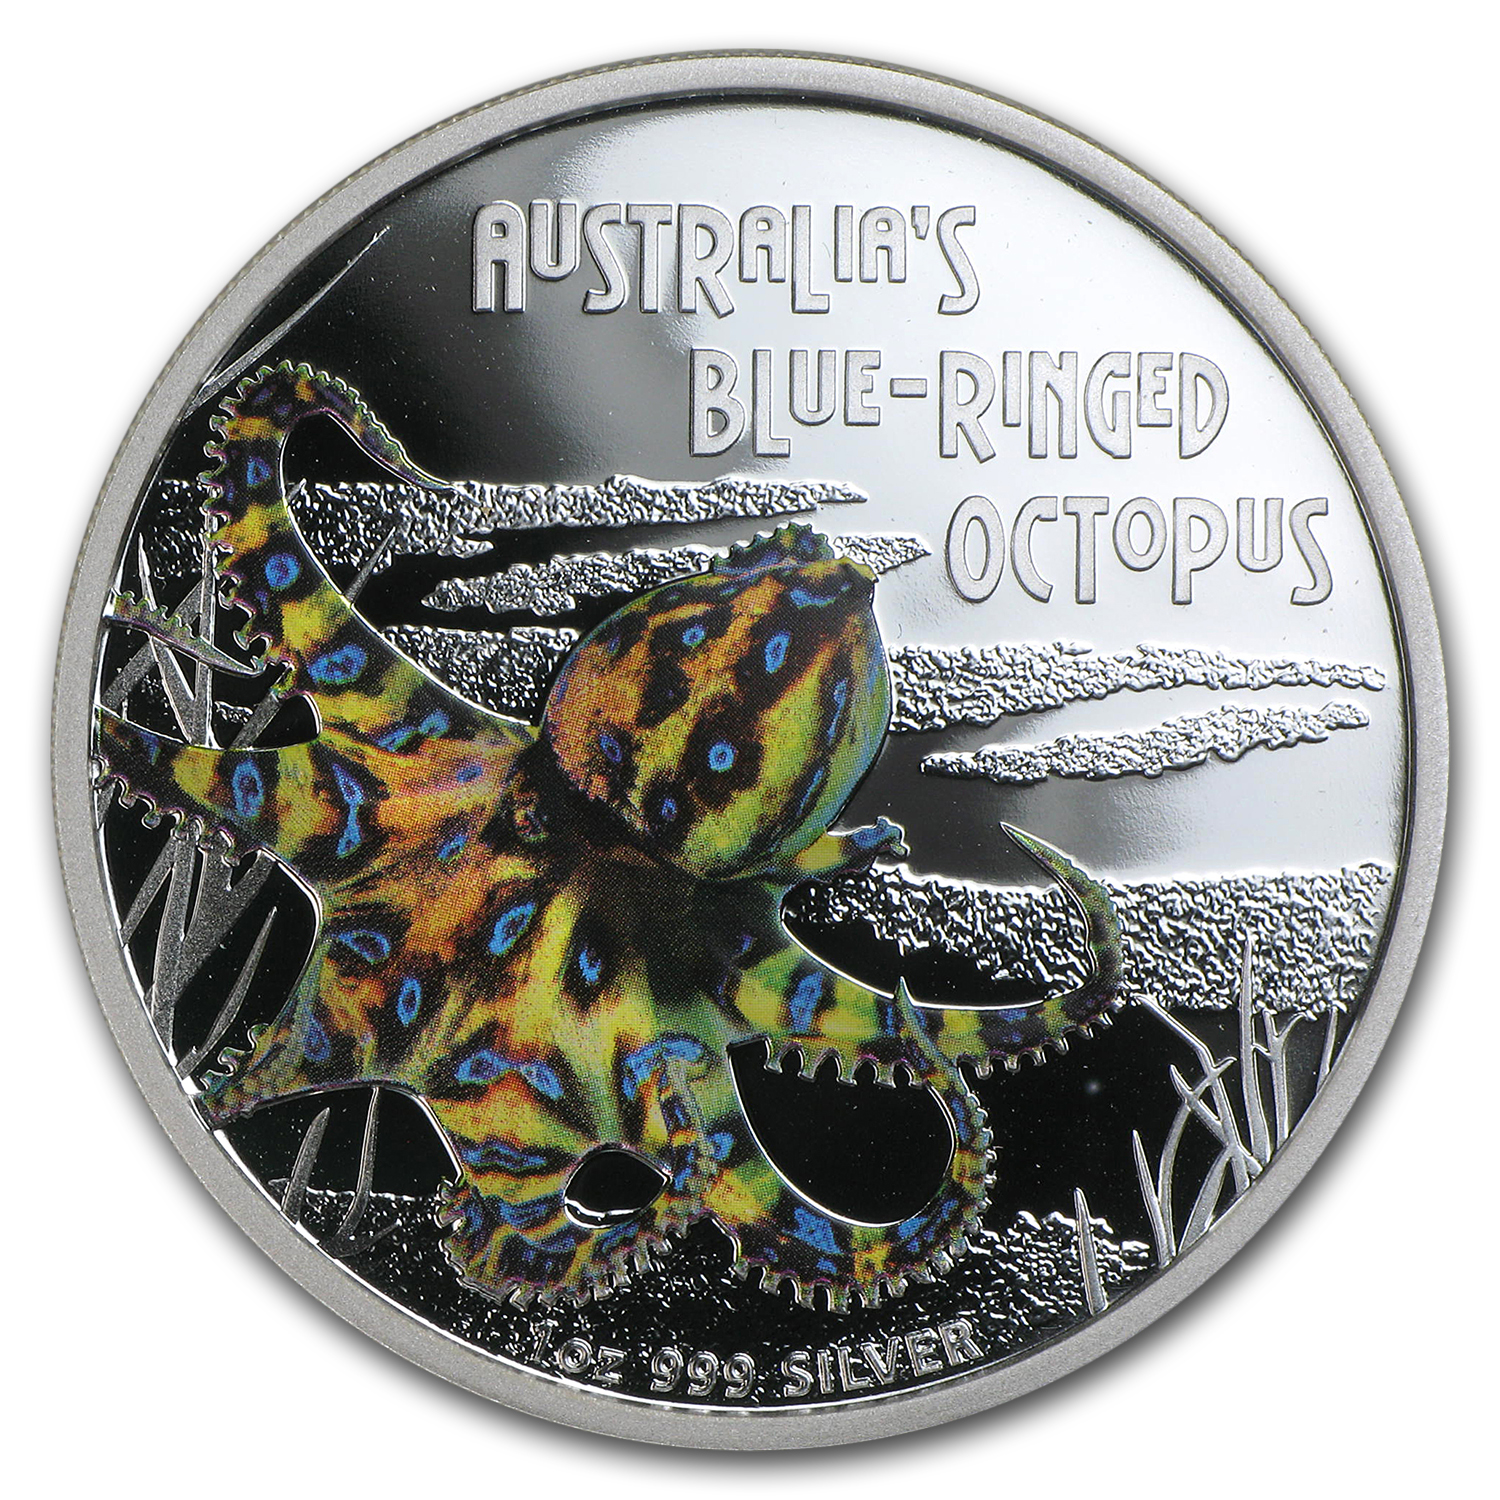 2008 Tuvalu 1 oz Silver Blue Ringed Octopus Proof